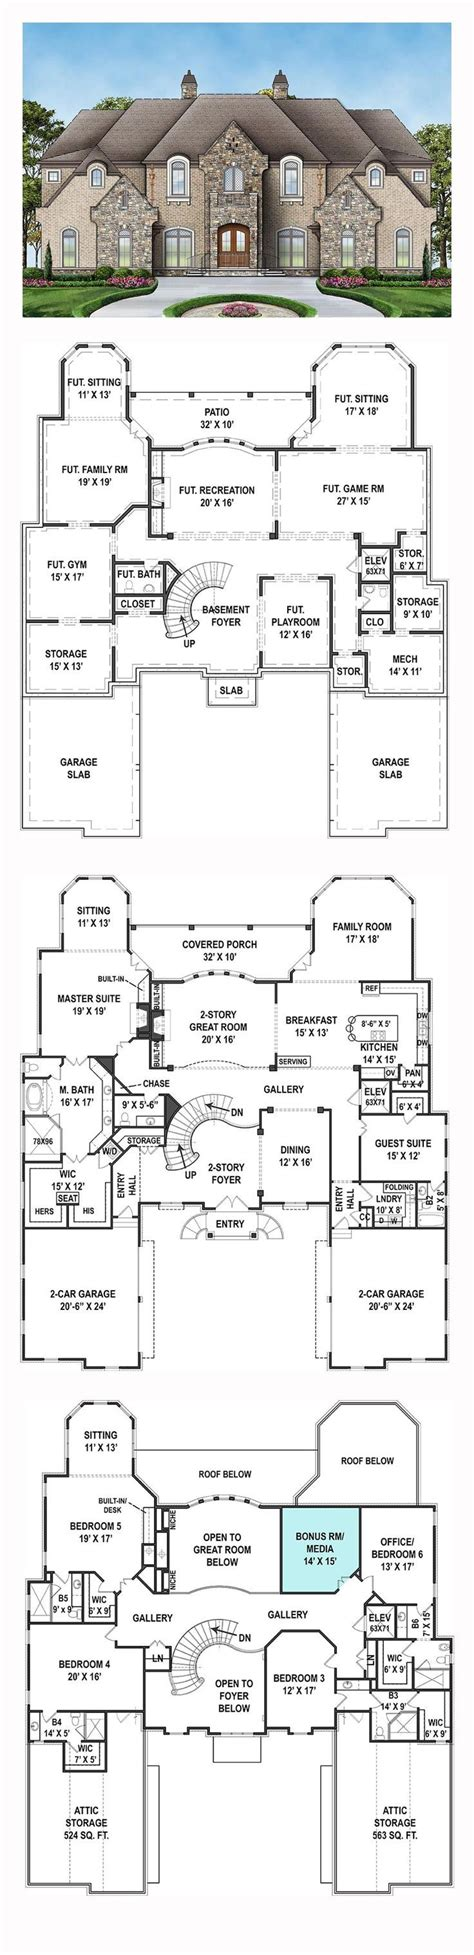 luxury home designs and floor plans best 25 new house plans ideas on house plans